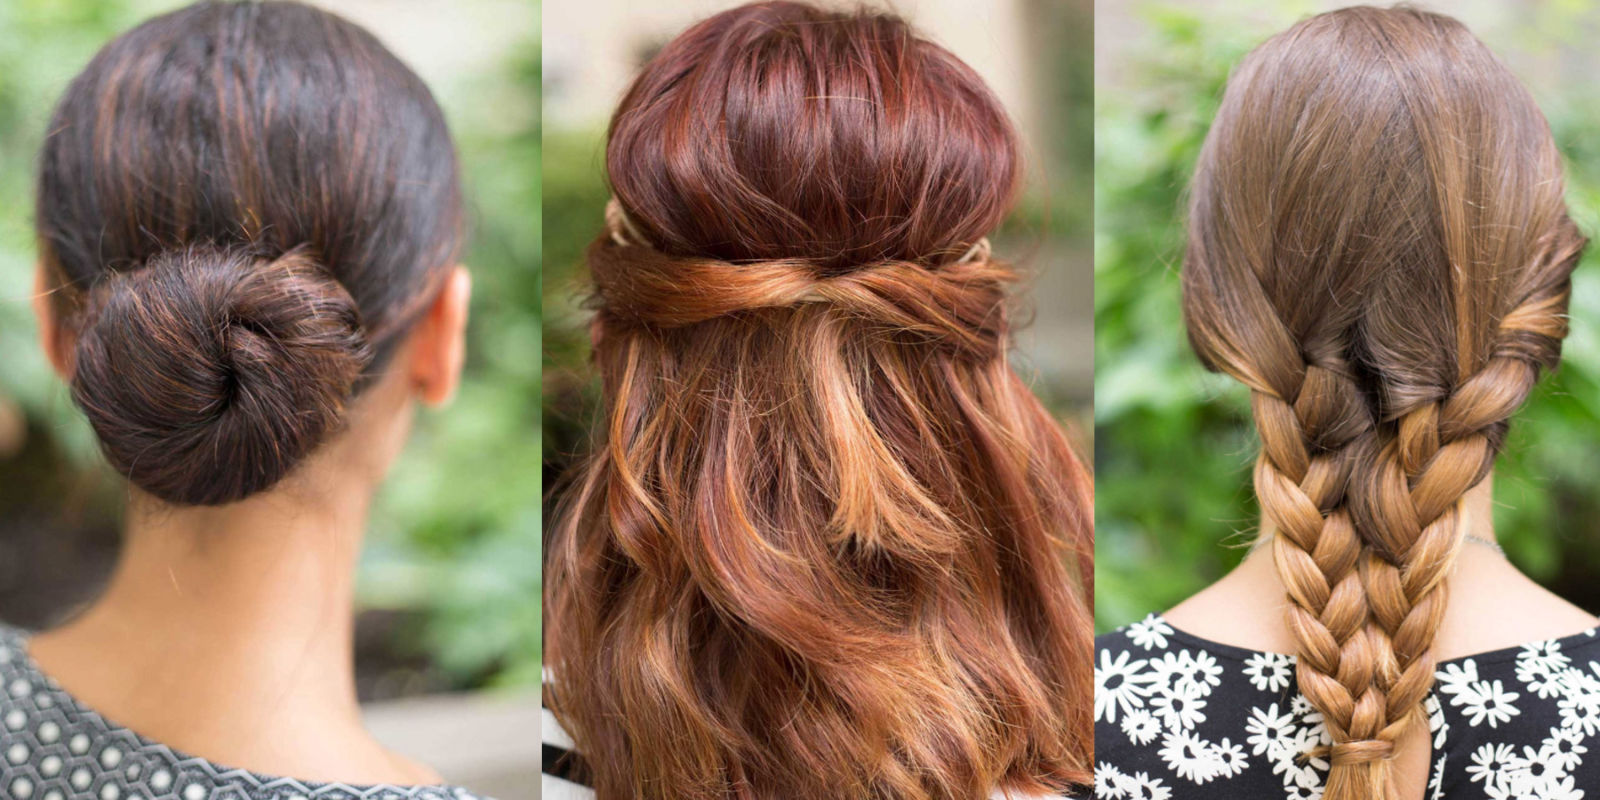 15 super easy hairstyles for lazy girls who can t even